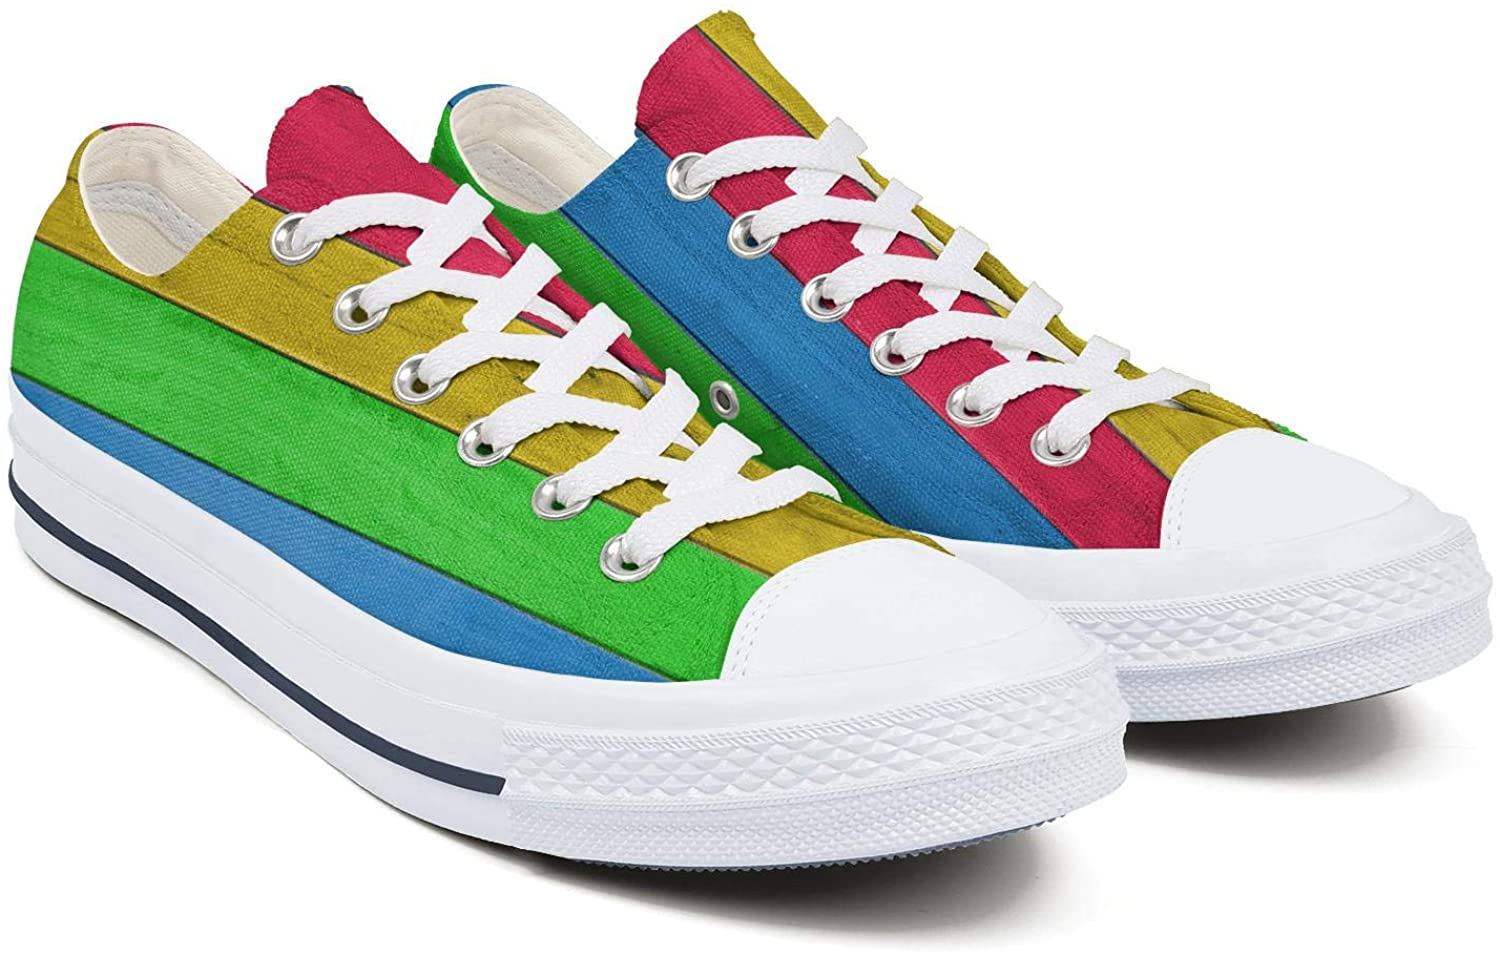 Women's Low-Cut Laced Canvas Shoes Creative Wood Plank Gay Pride Non-Slip Durable Shoes Daily Leisure Shoes